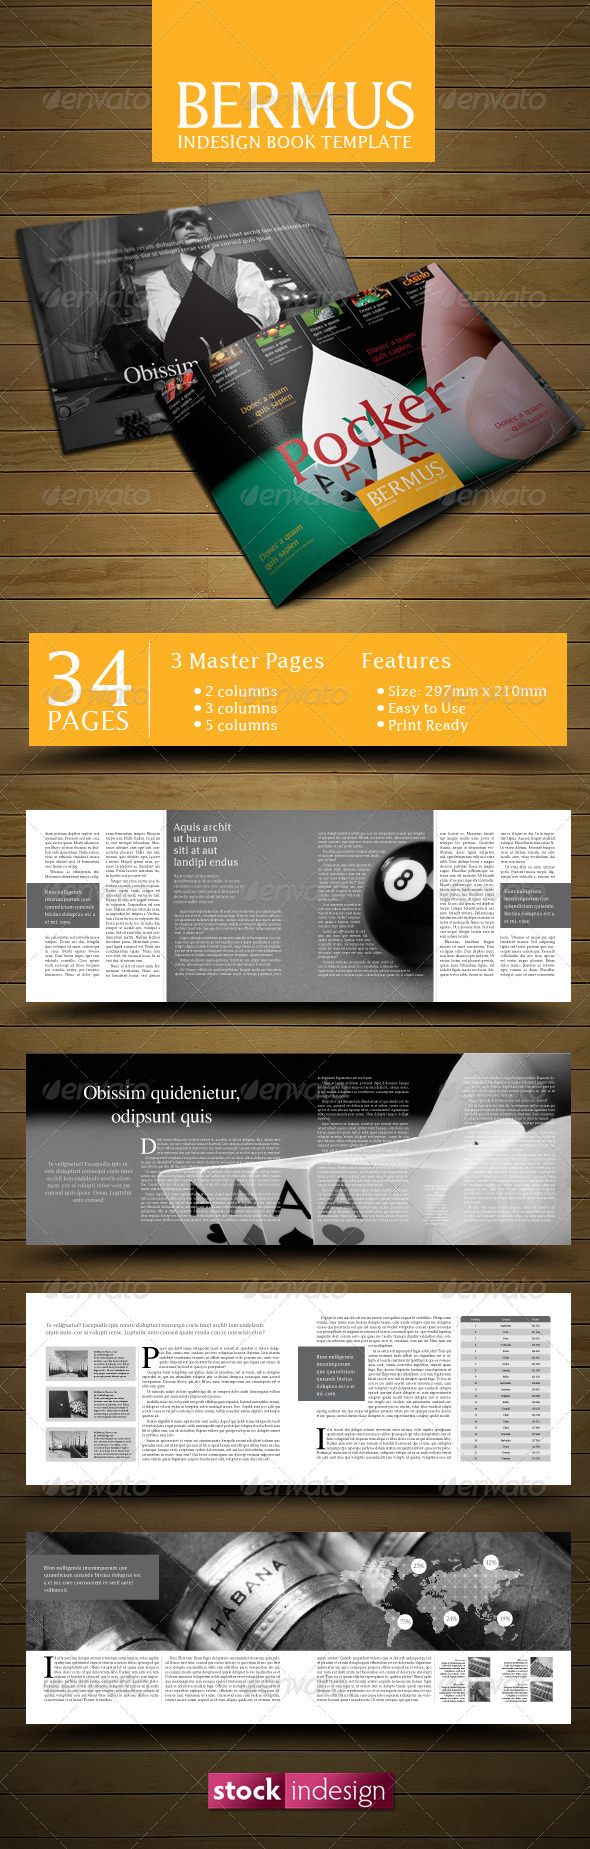 Indesign book template bermus graphicriver for Indesign templates for books